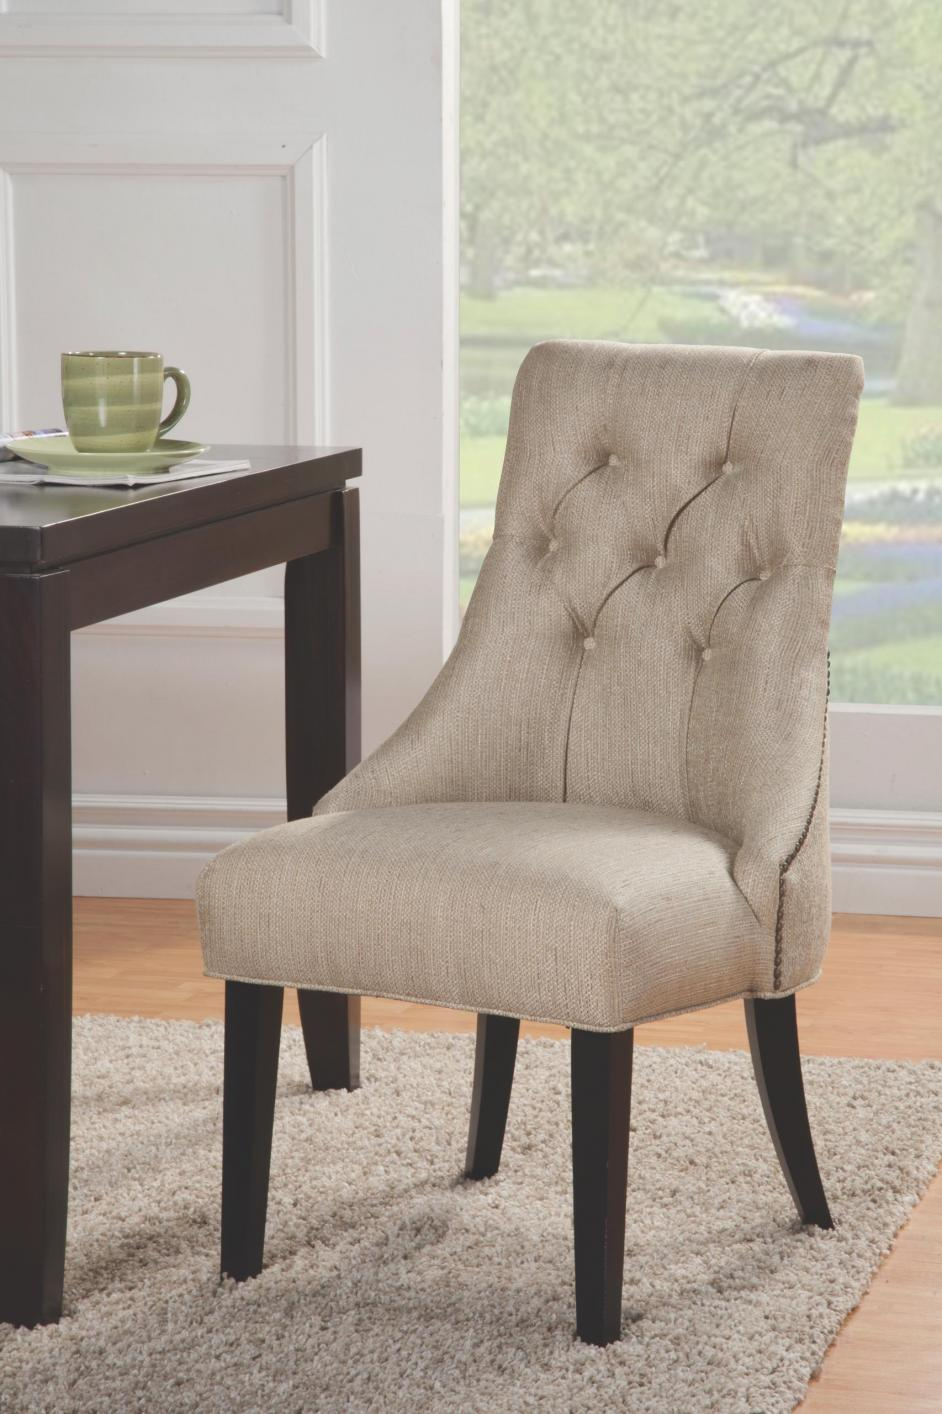 Beige Fabric Accent Chair Steal A Sofa Furniture Outlet